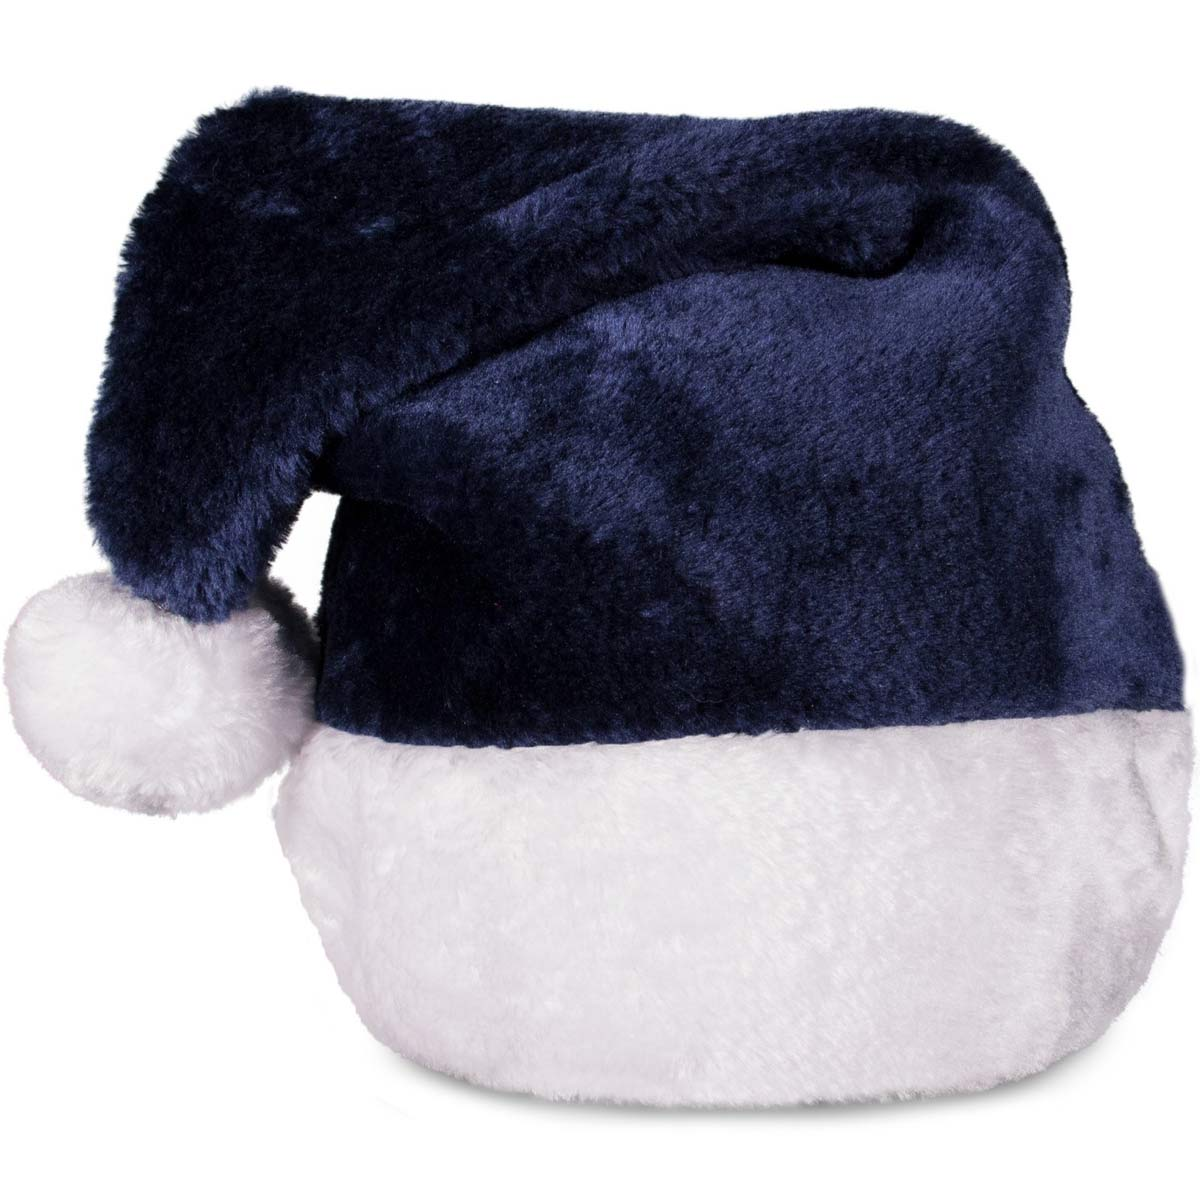 Embroidered Navy Blue Plush Santa Hats